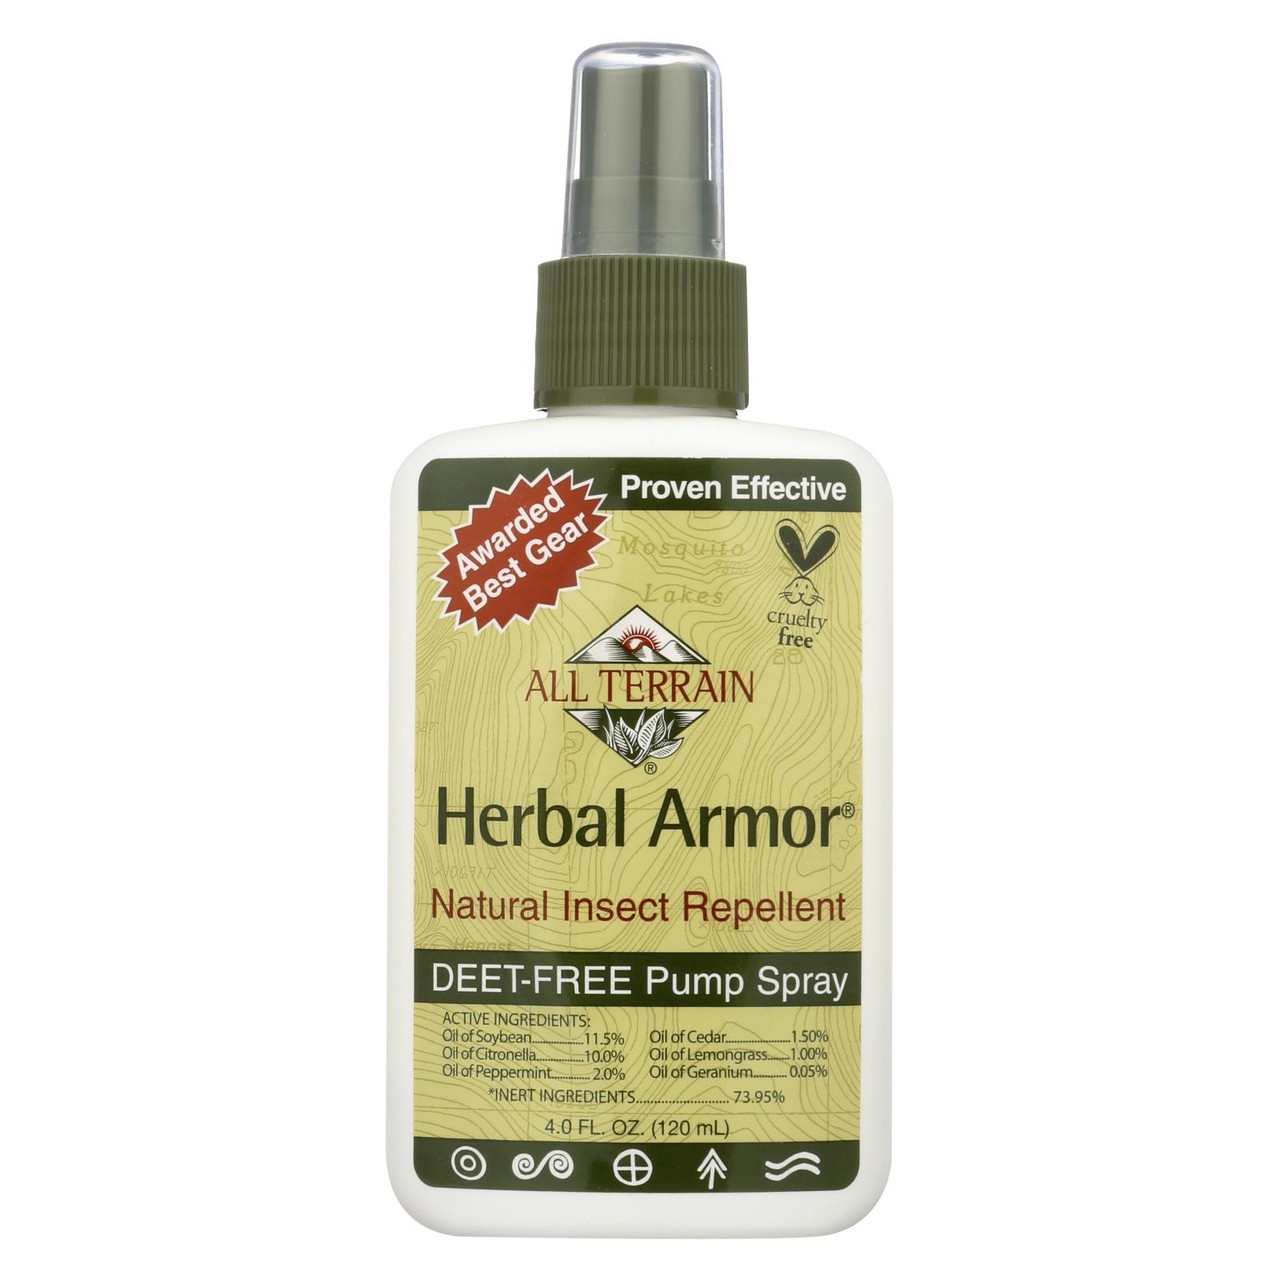 All Terrain Herbal Armor Natural Insect Repellent 4 Fl Oz The